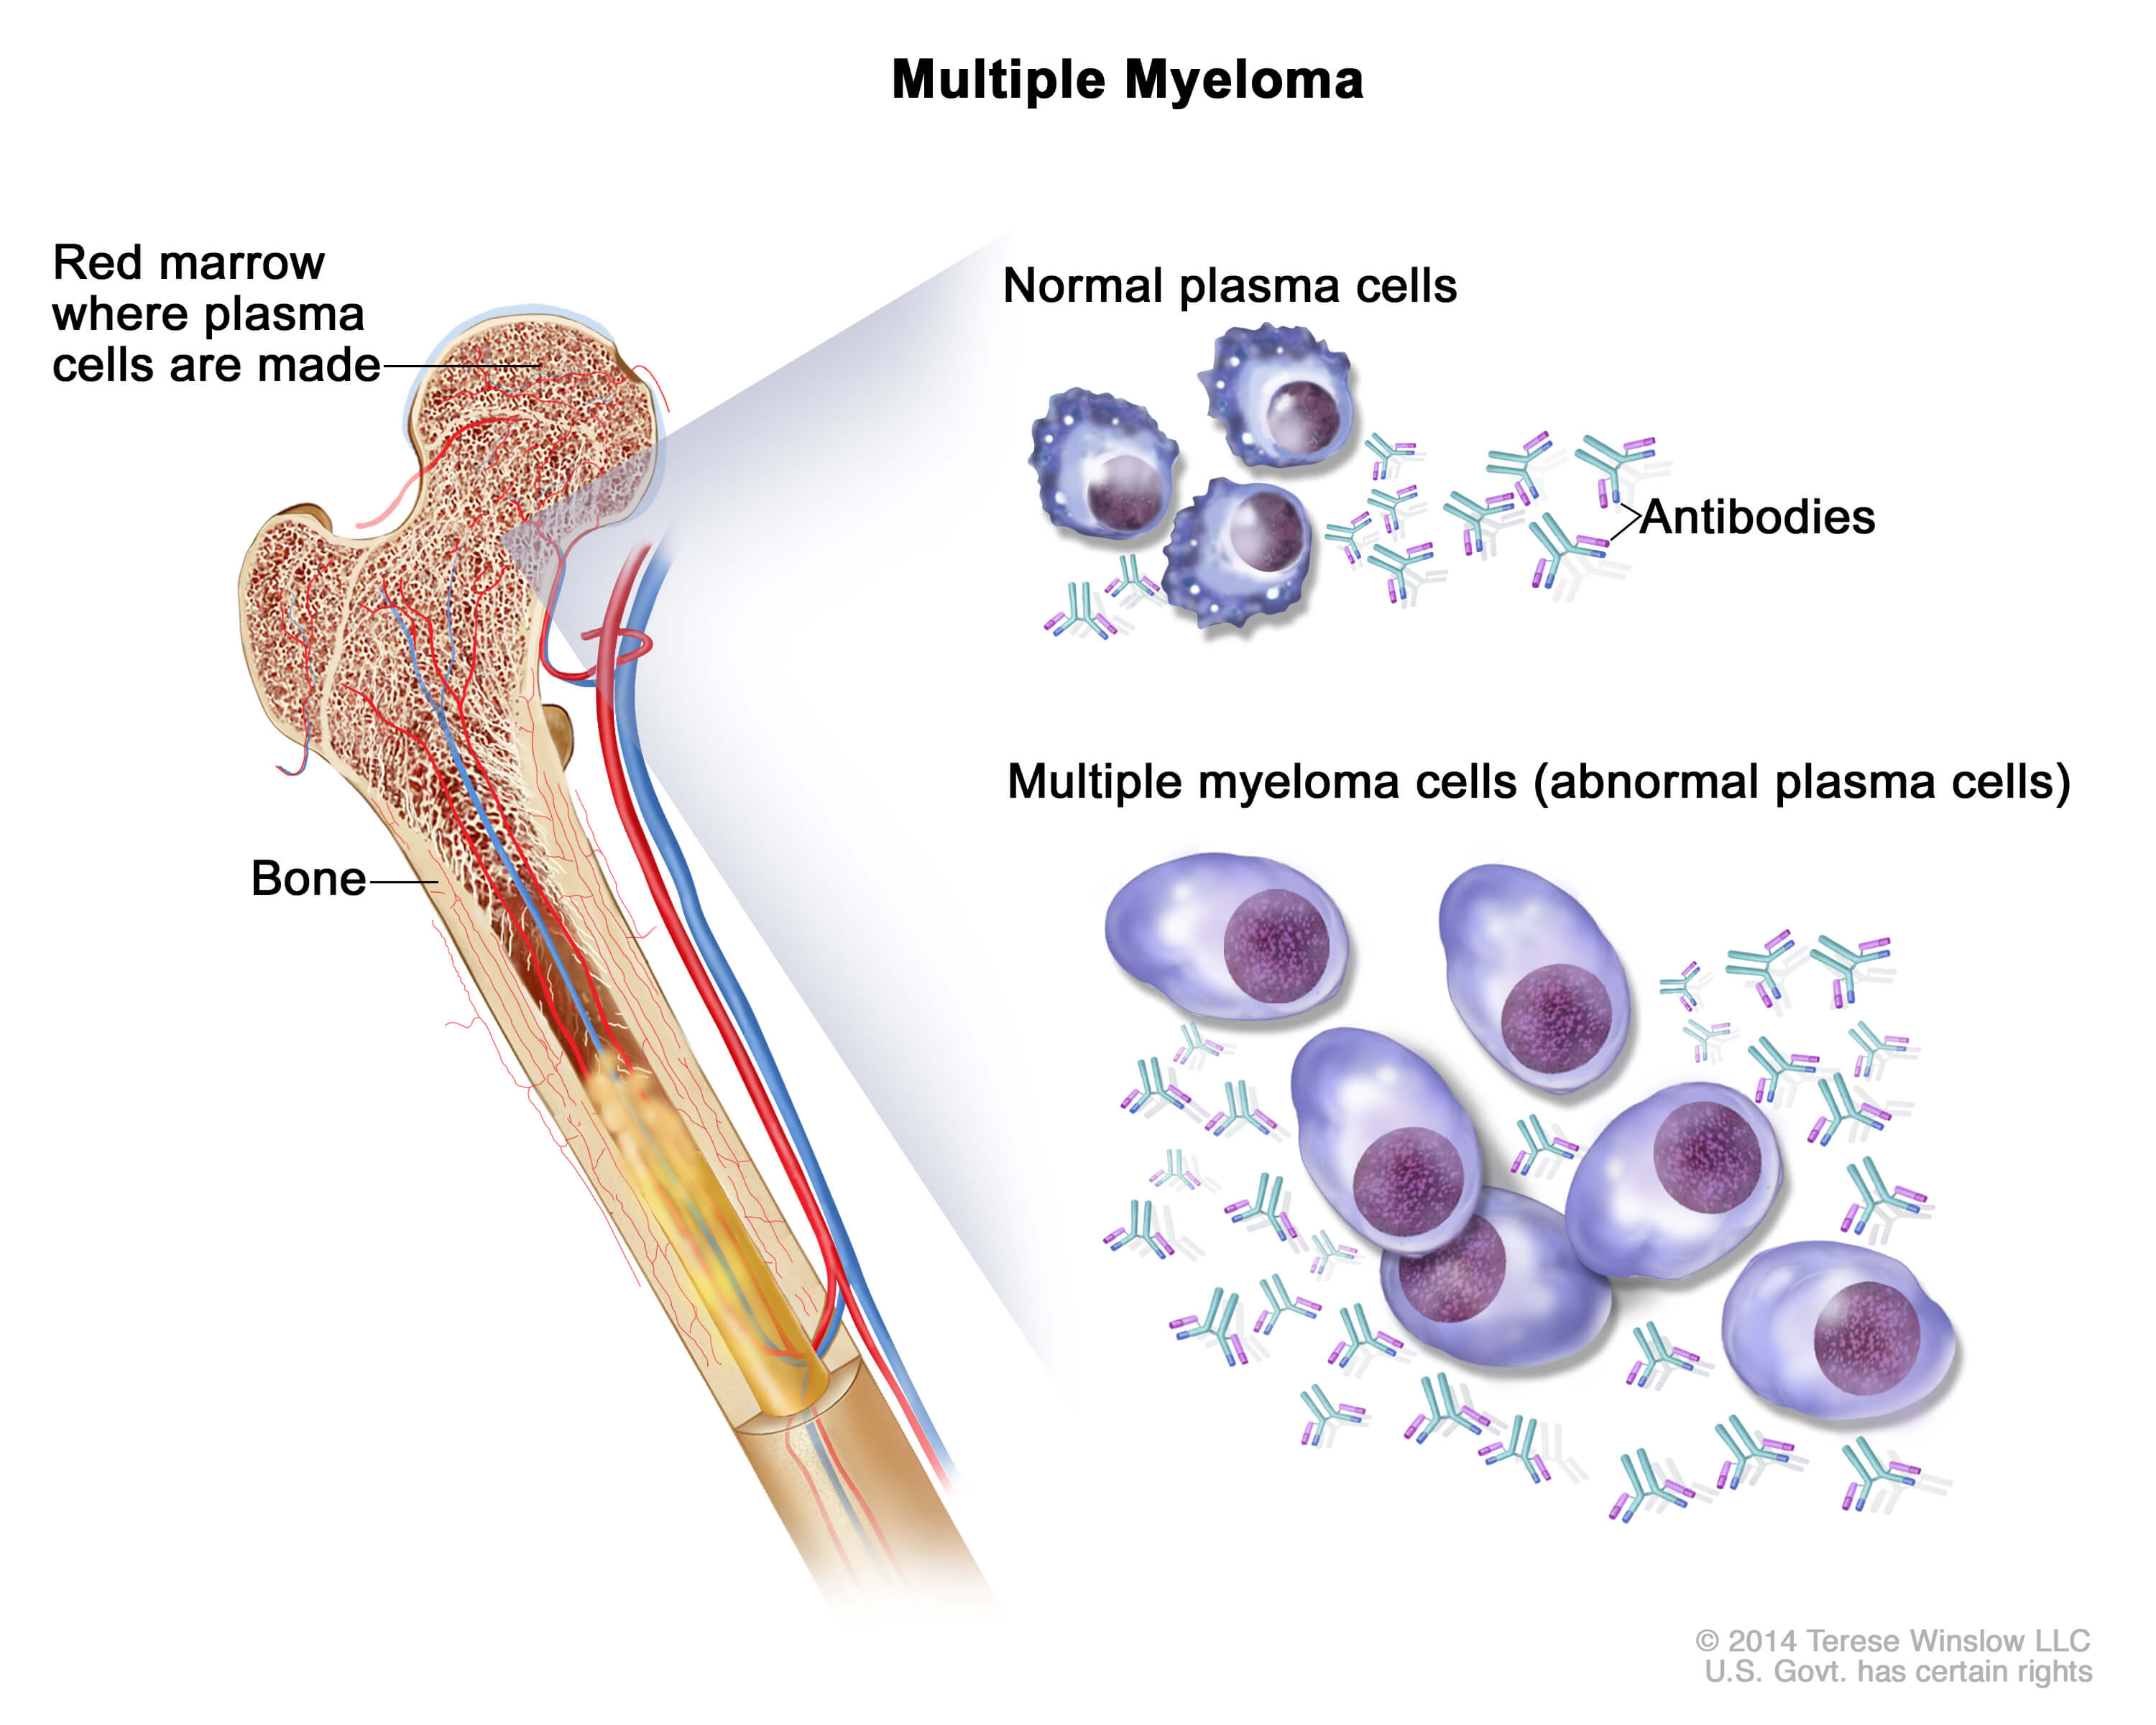 Plasma cell neoplasms including multiple myelomapatient version multiple myeloma cells are abnormal plasma cells a type of white blood cell that build up in the bone marrow and form tumors in many bones of the body publicscrutiny Choice Image